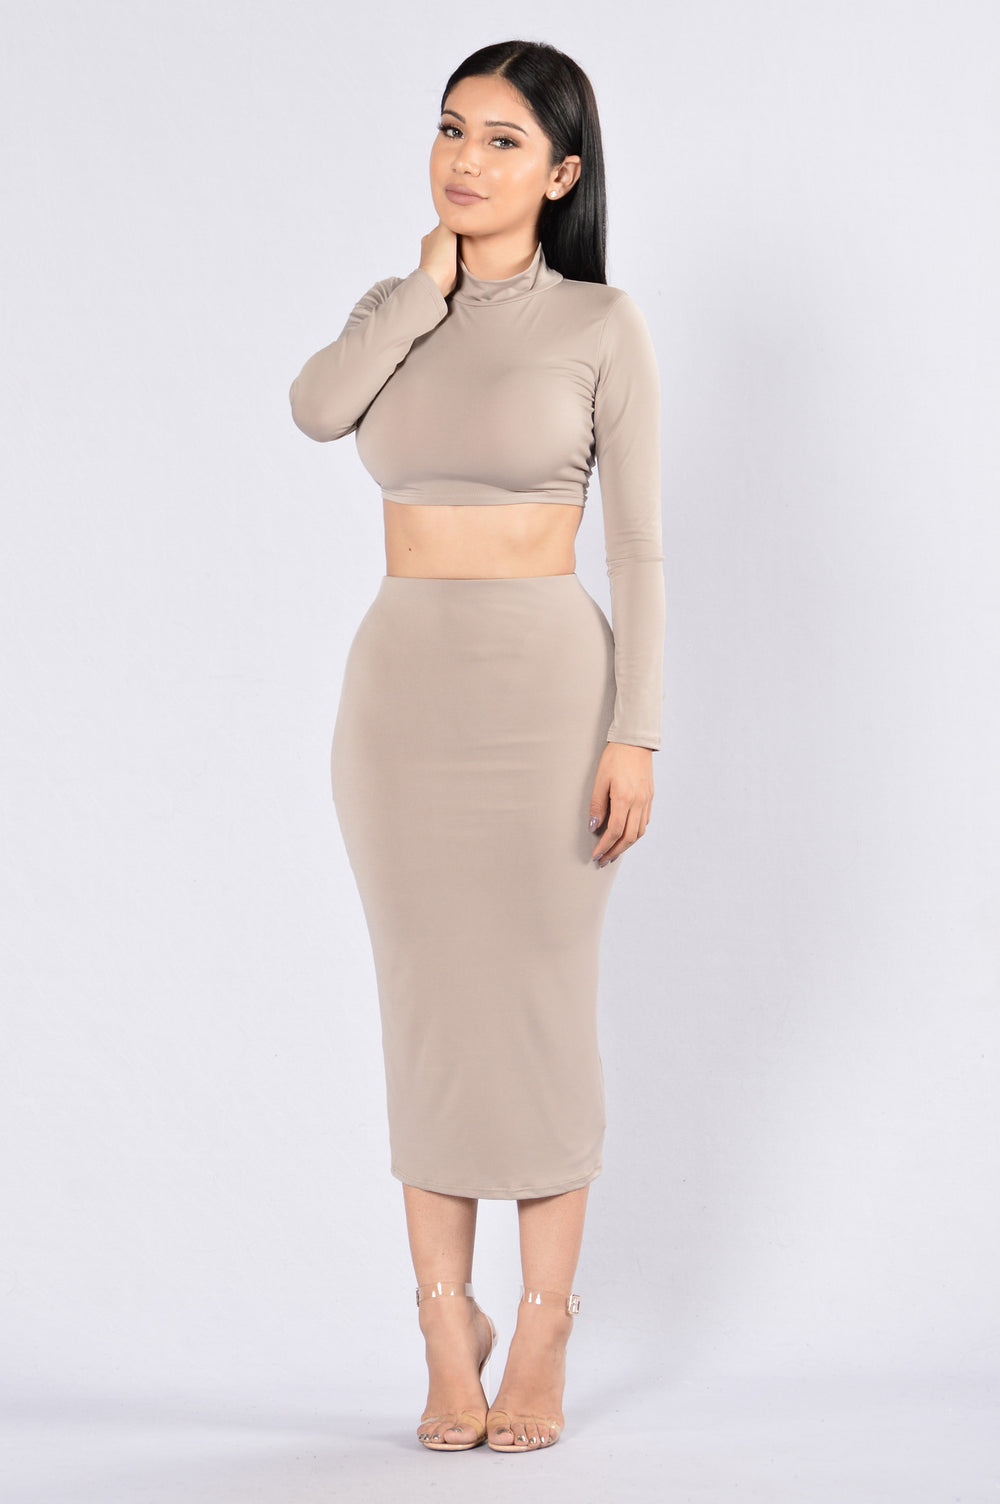 Rock My Body Top - Taupe